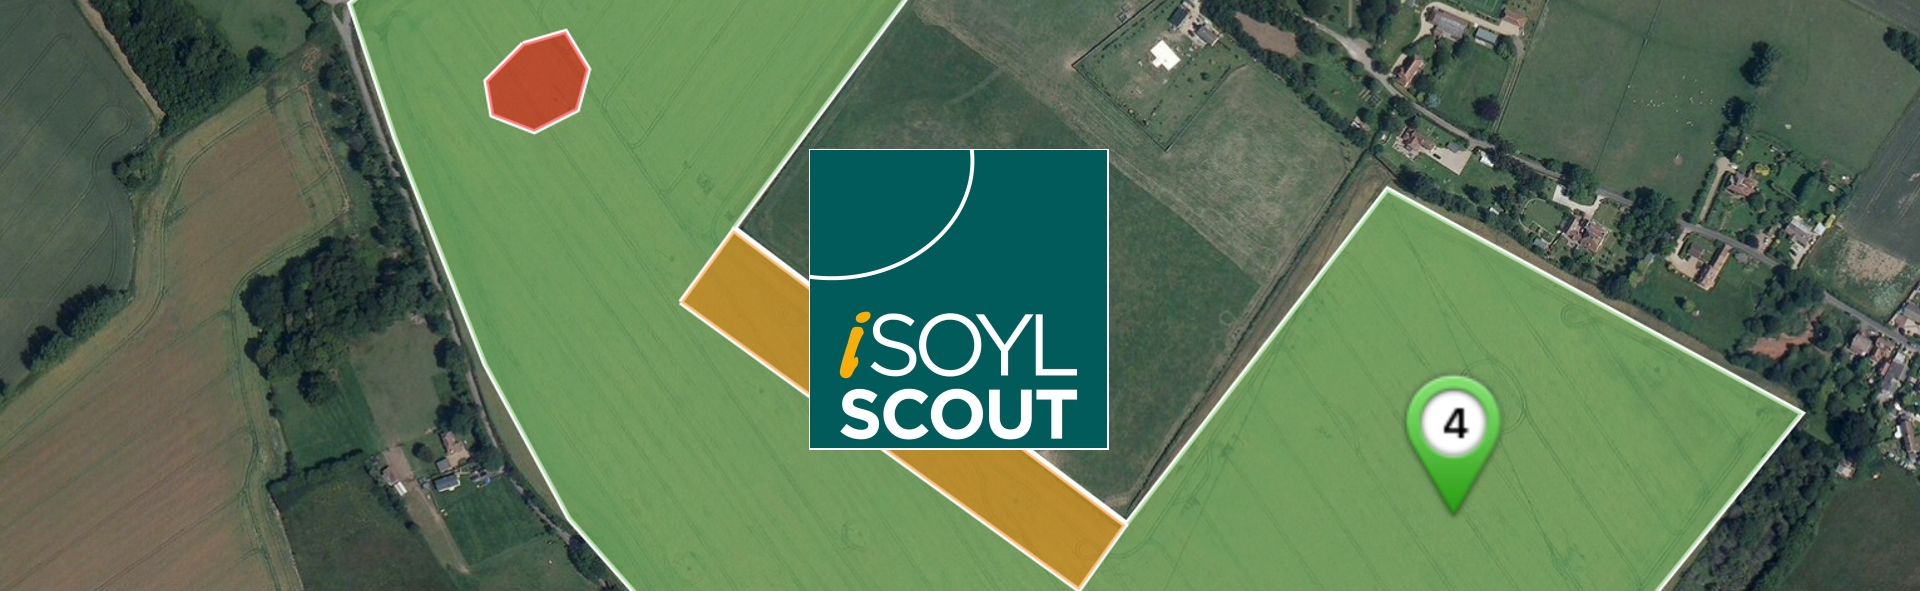 isoylscout banner